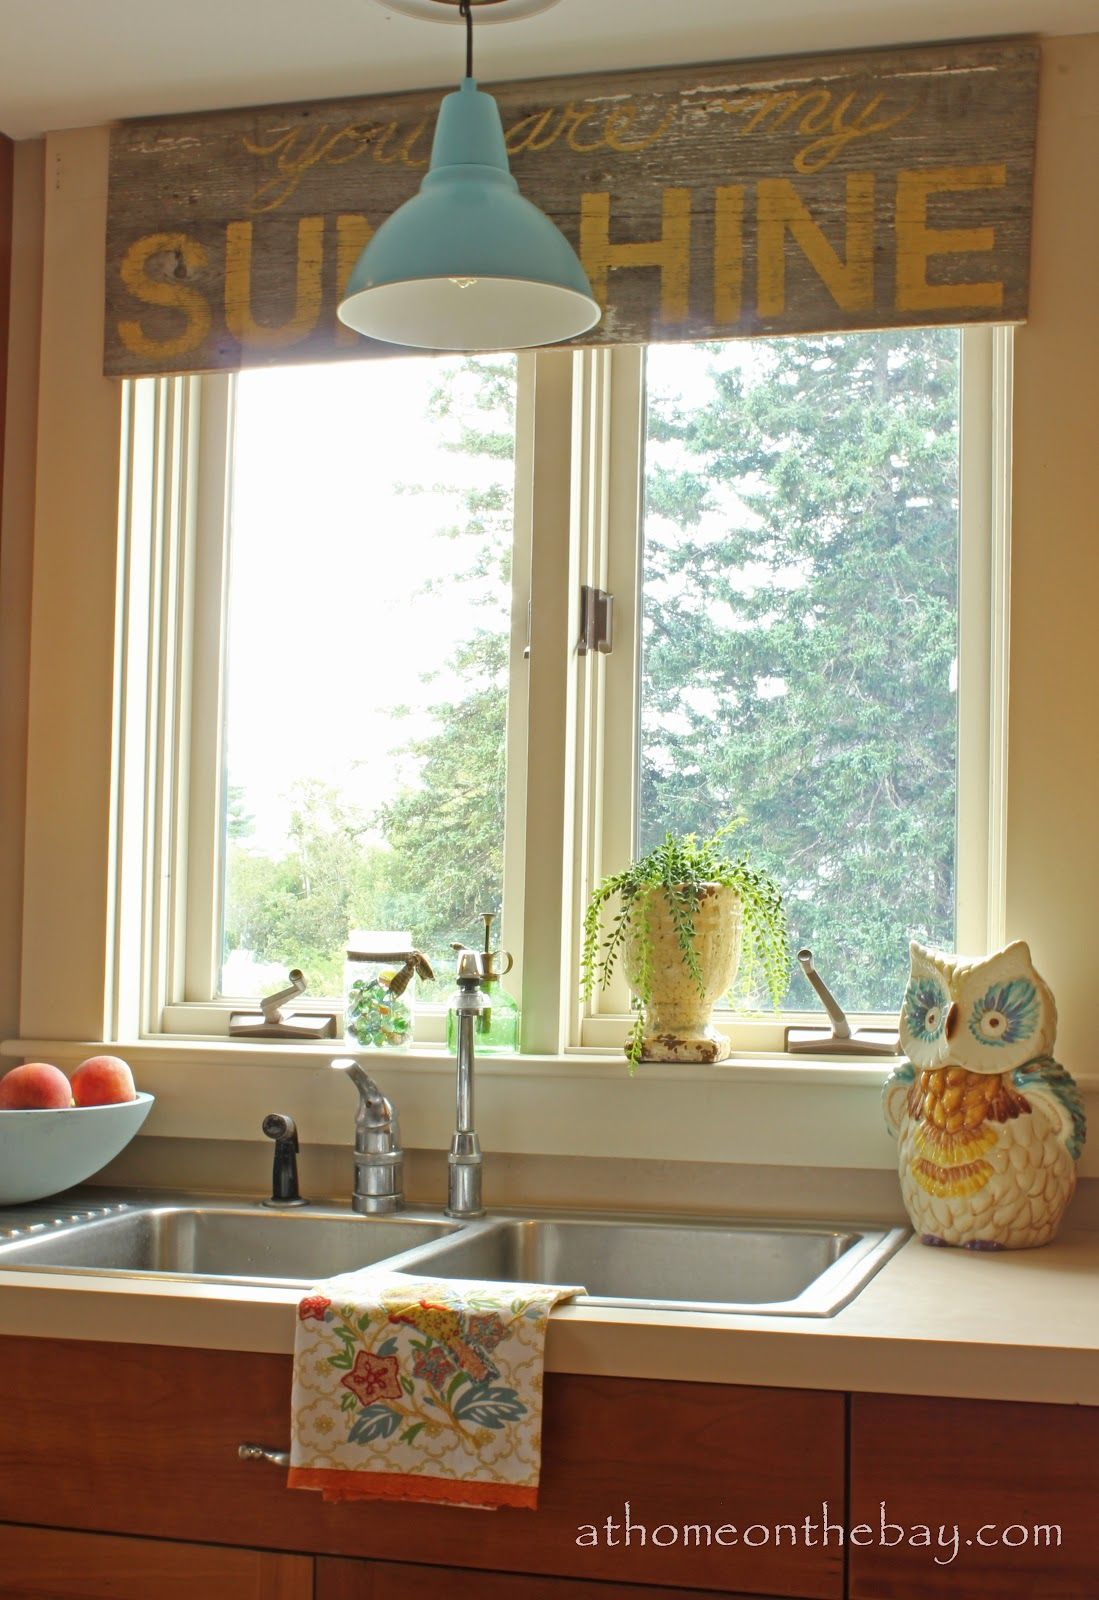 Rustic kitchen window treatments  at home on the bay two things to love about thisikea hack barn